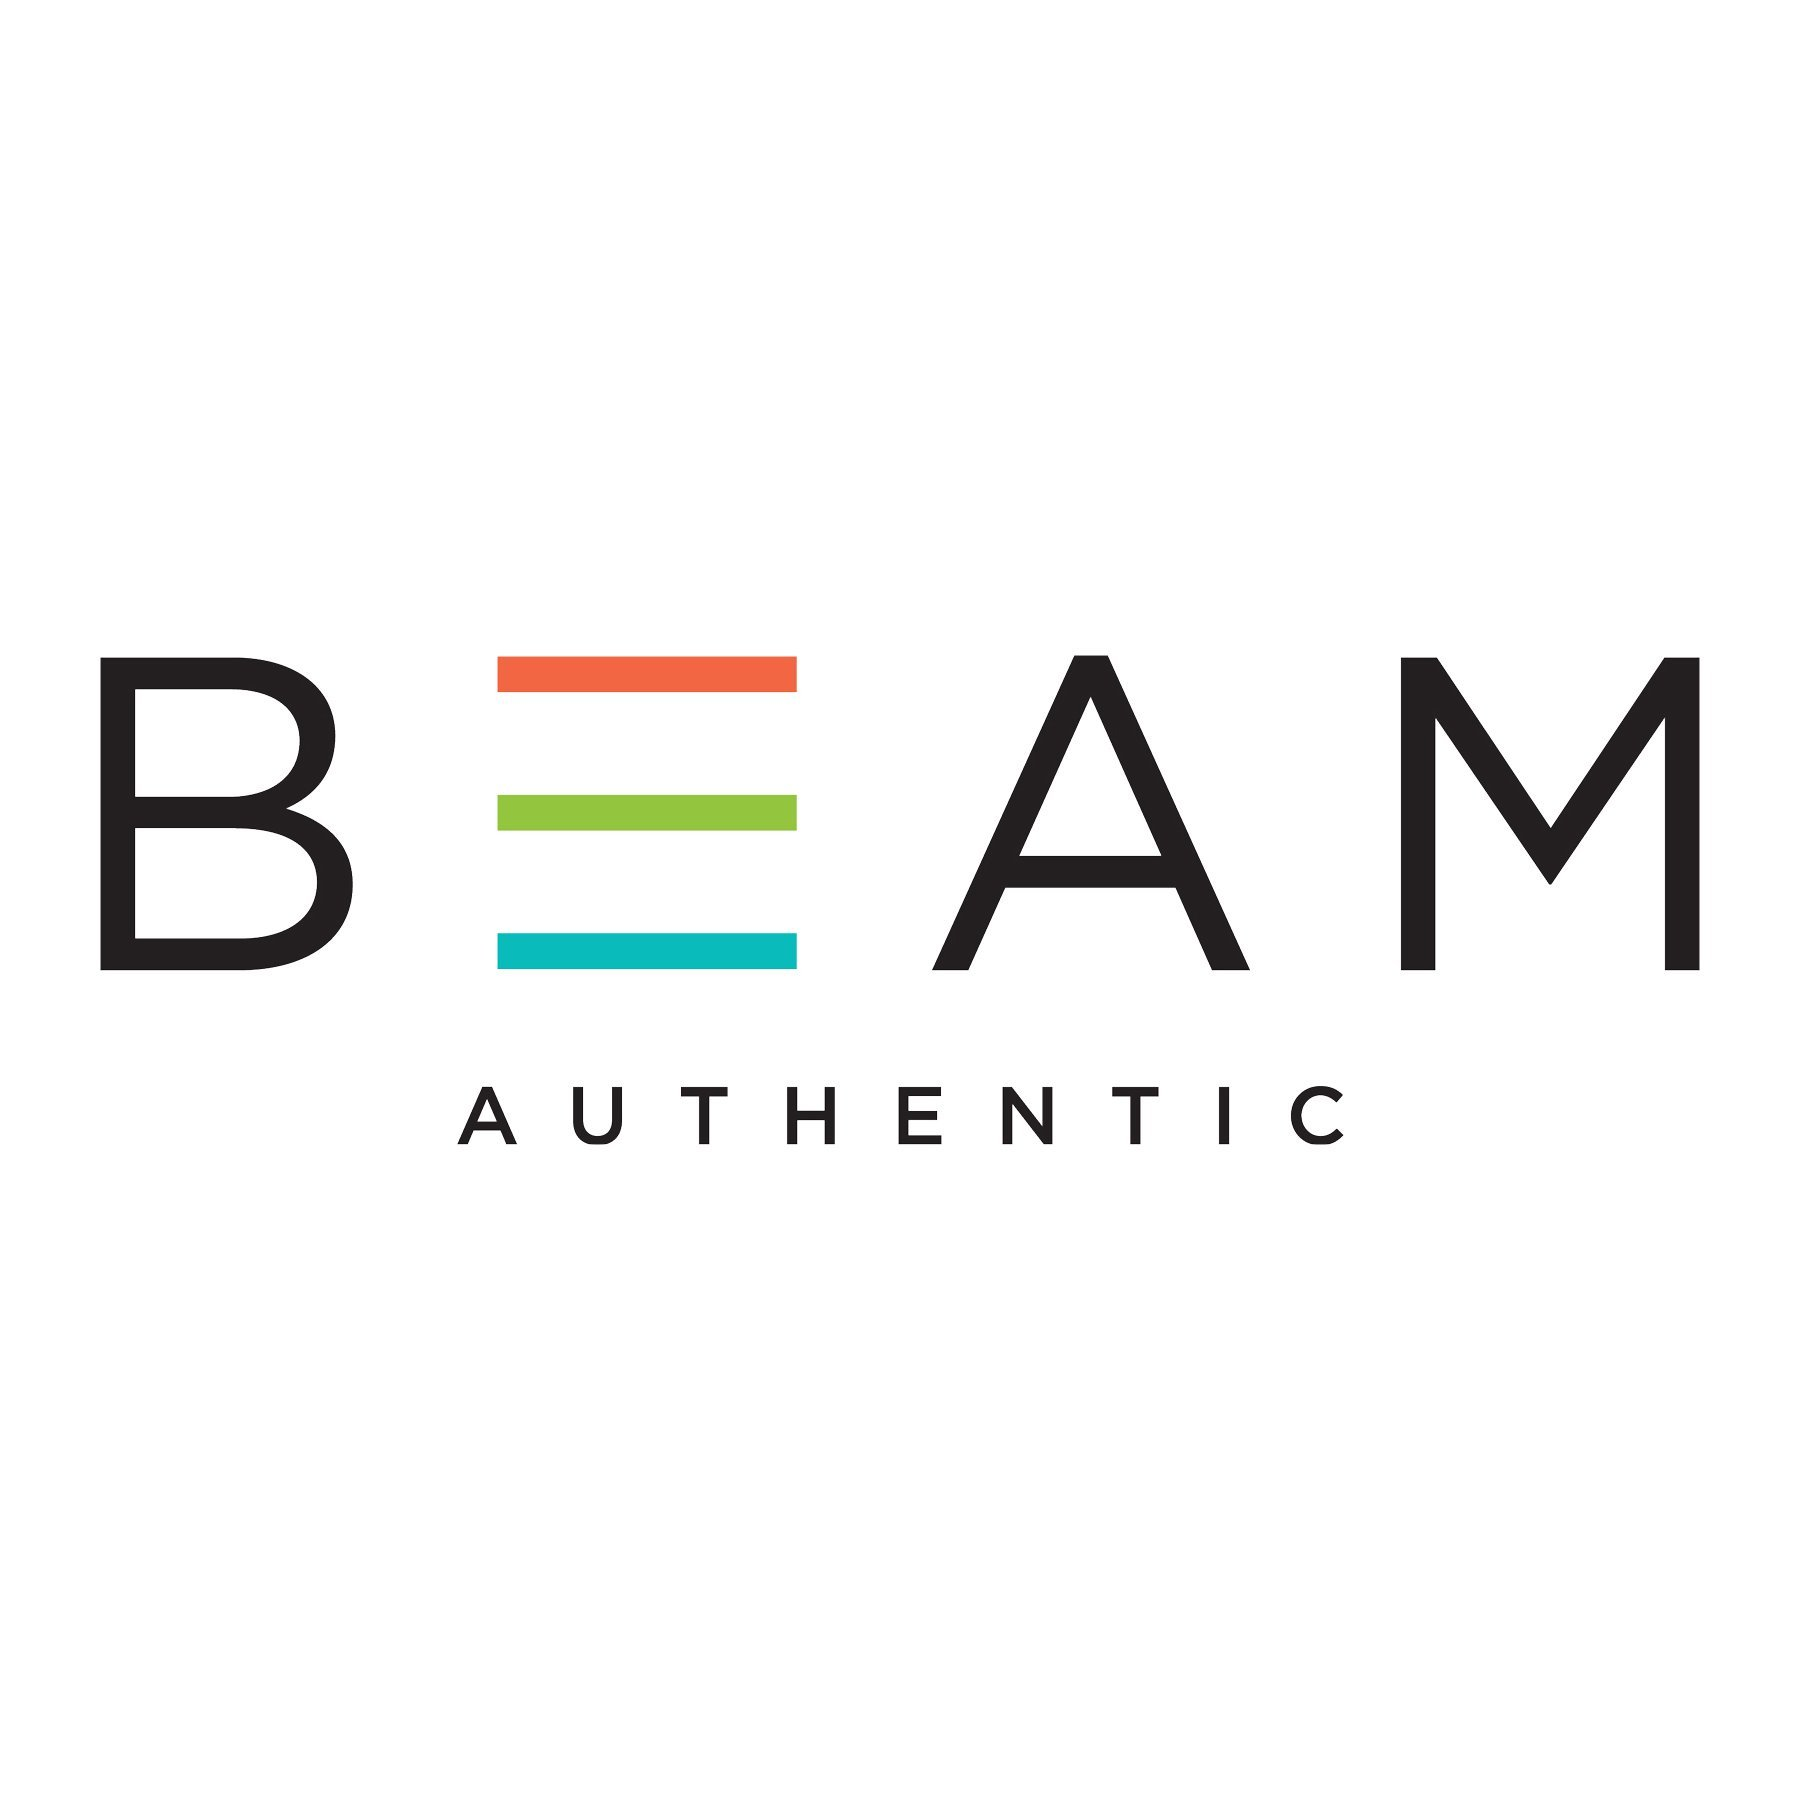 BEAM Authentic